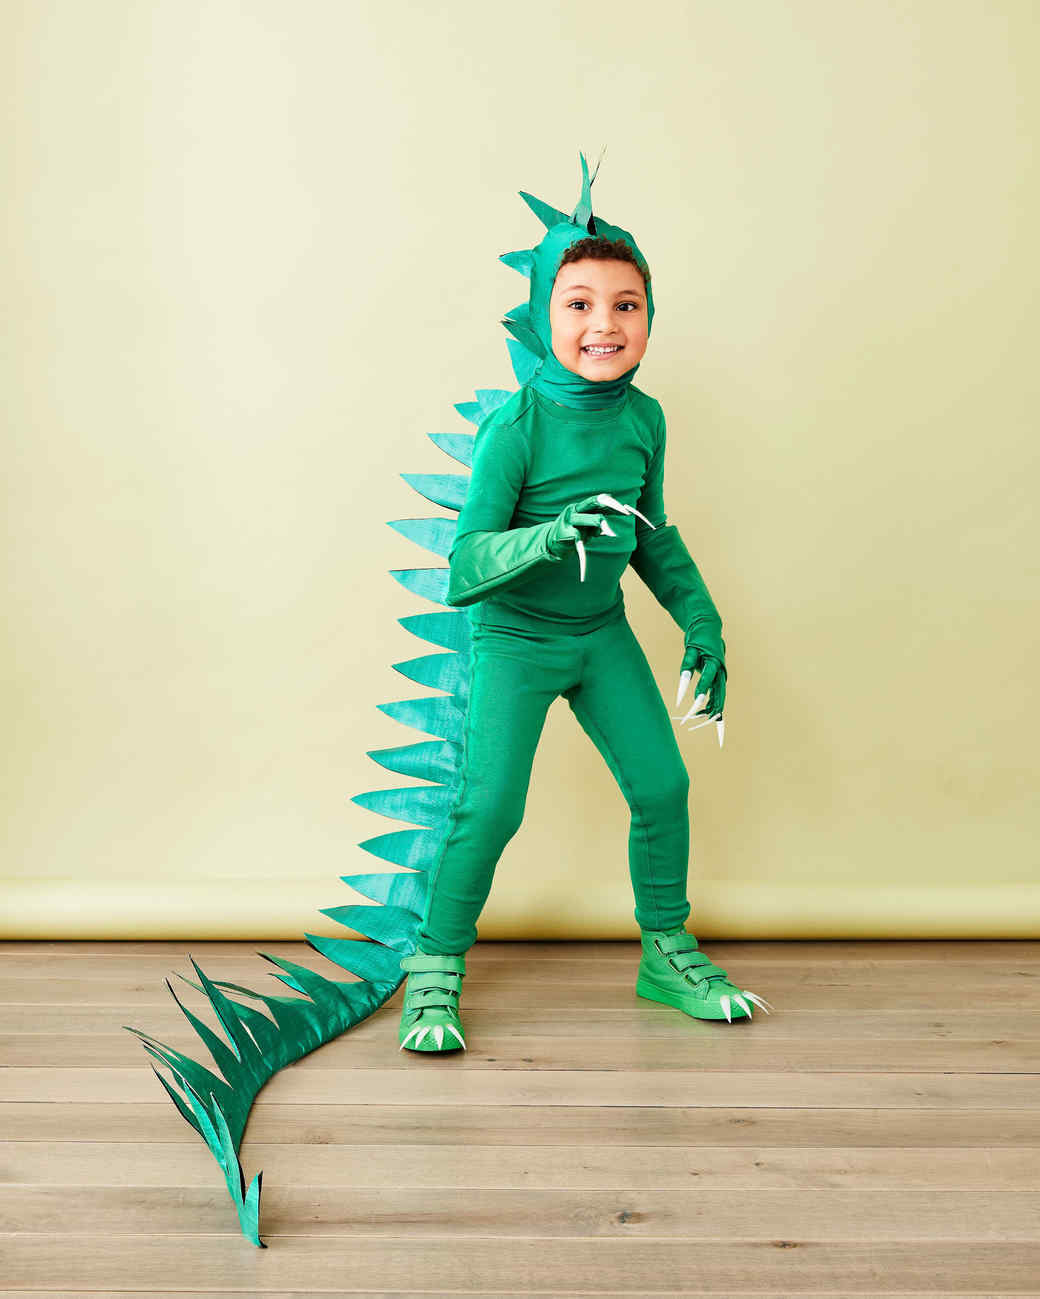 Martha Stewart Halloween Costume 2020 The Cut Dinosaur Costume | Martha Stewart